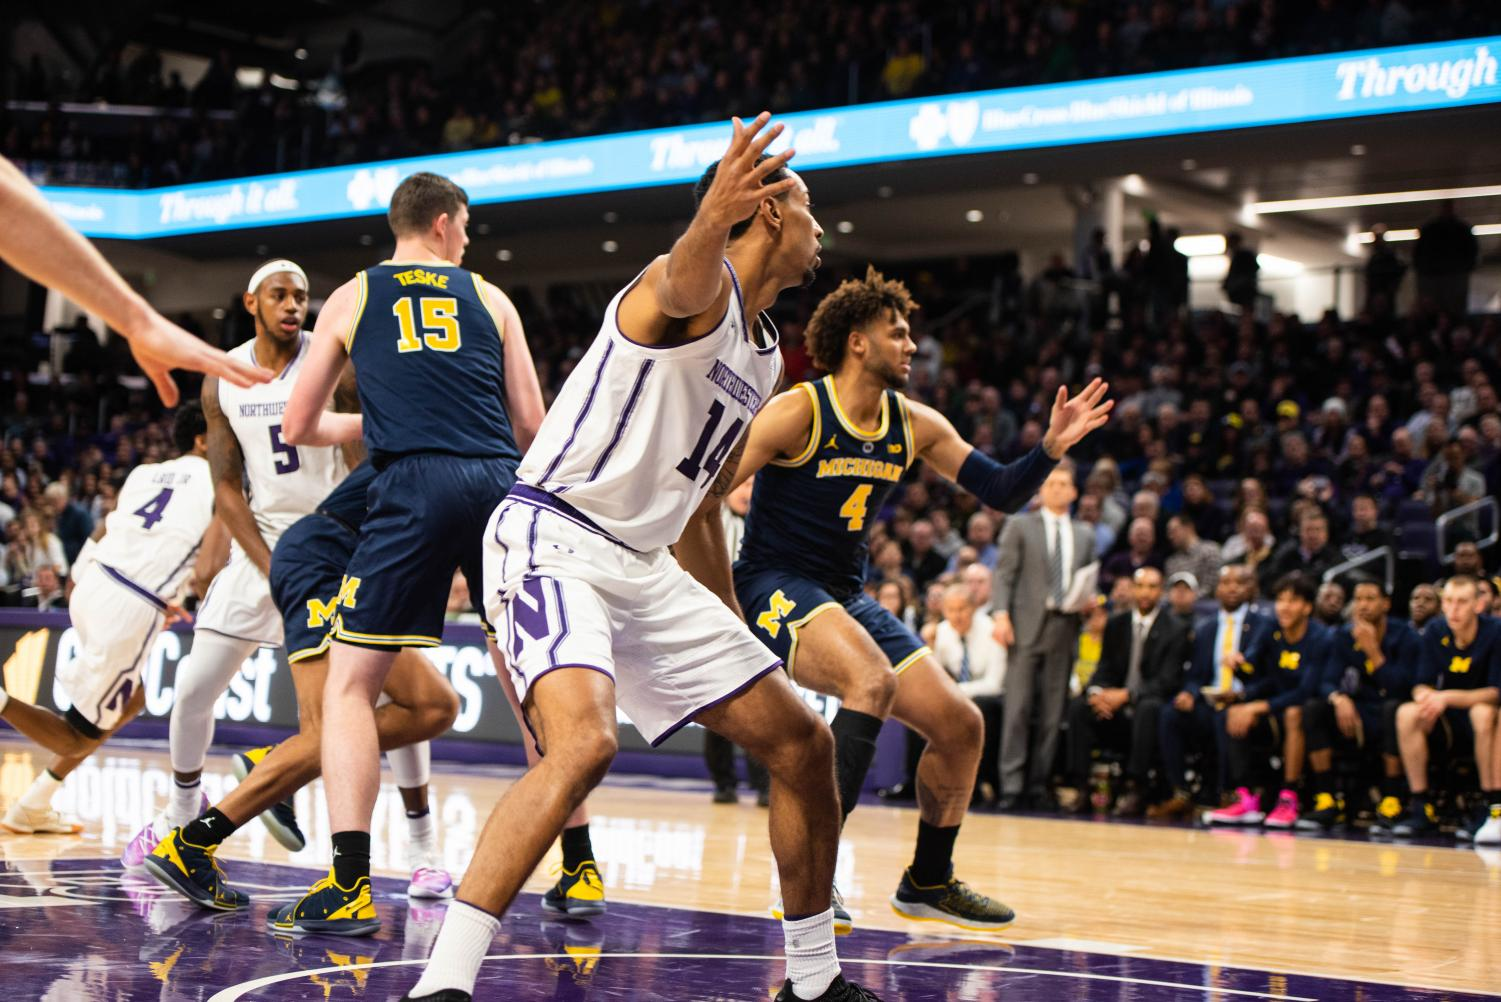 Ryan Taylor calls for the ball. The graduate guard had two big three-pointers down the stretch to give the Wildcats the win.